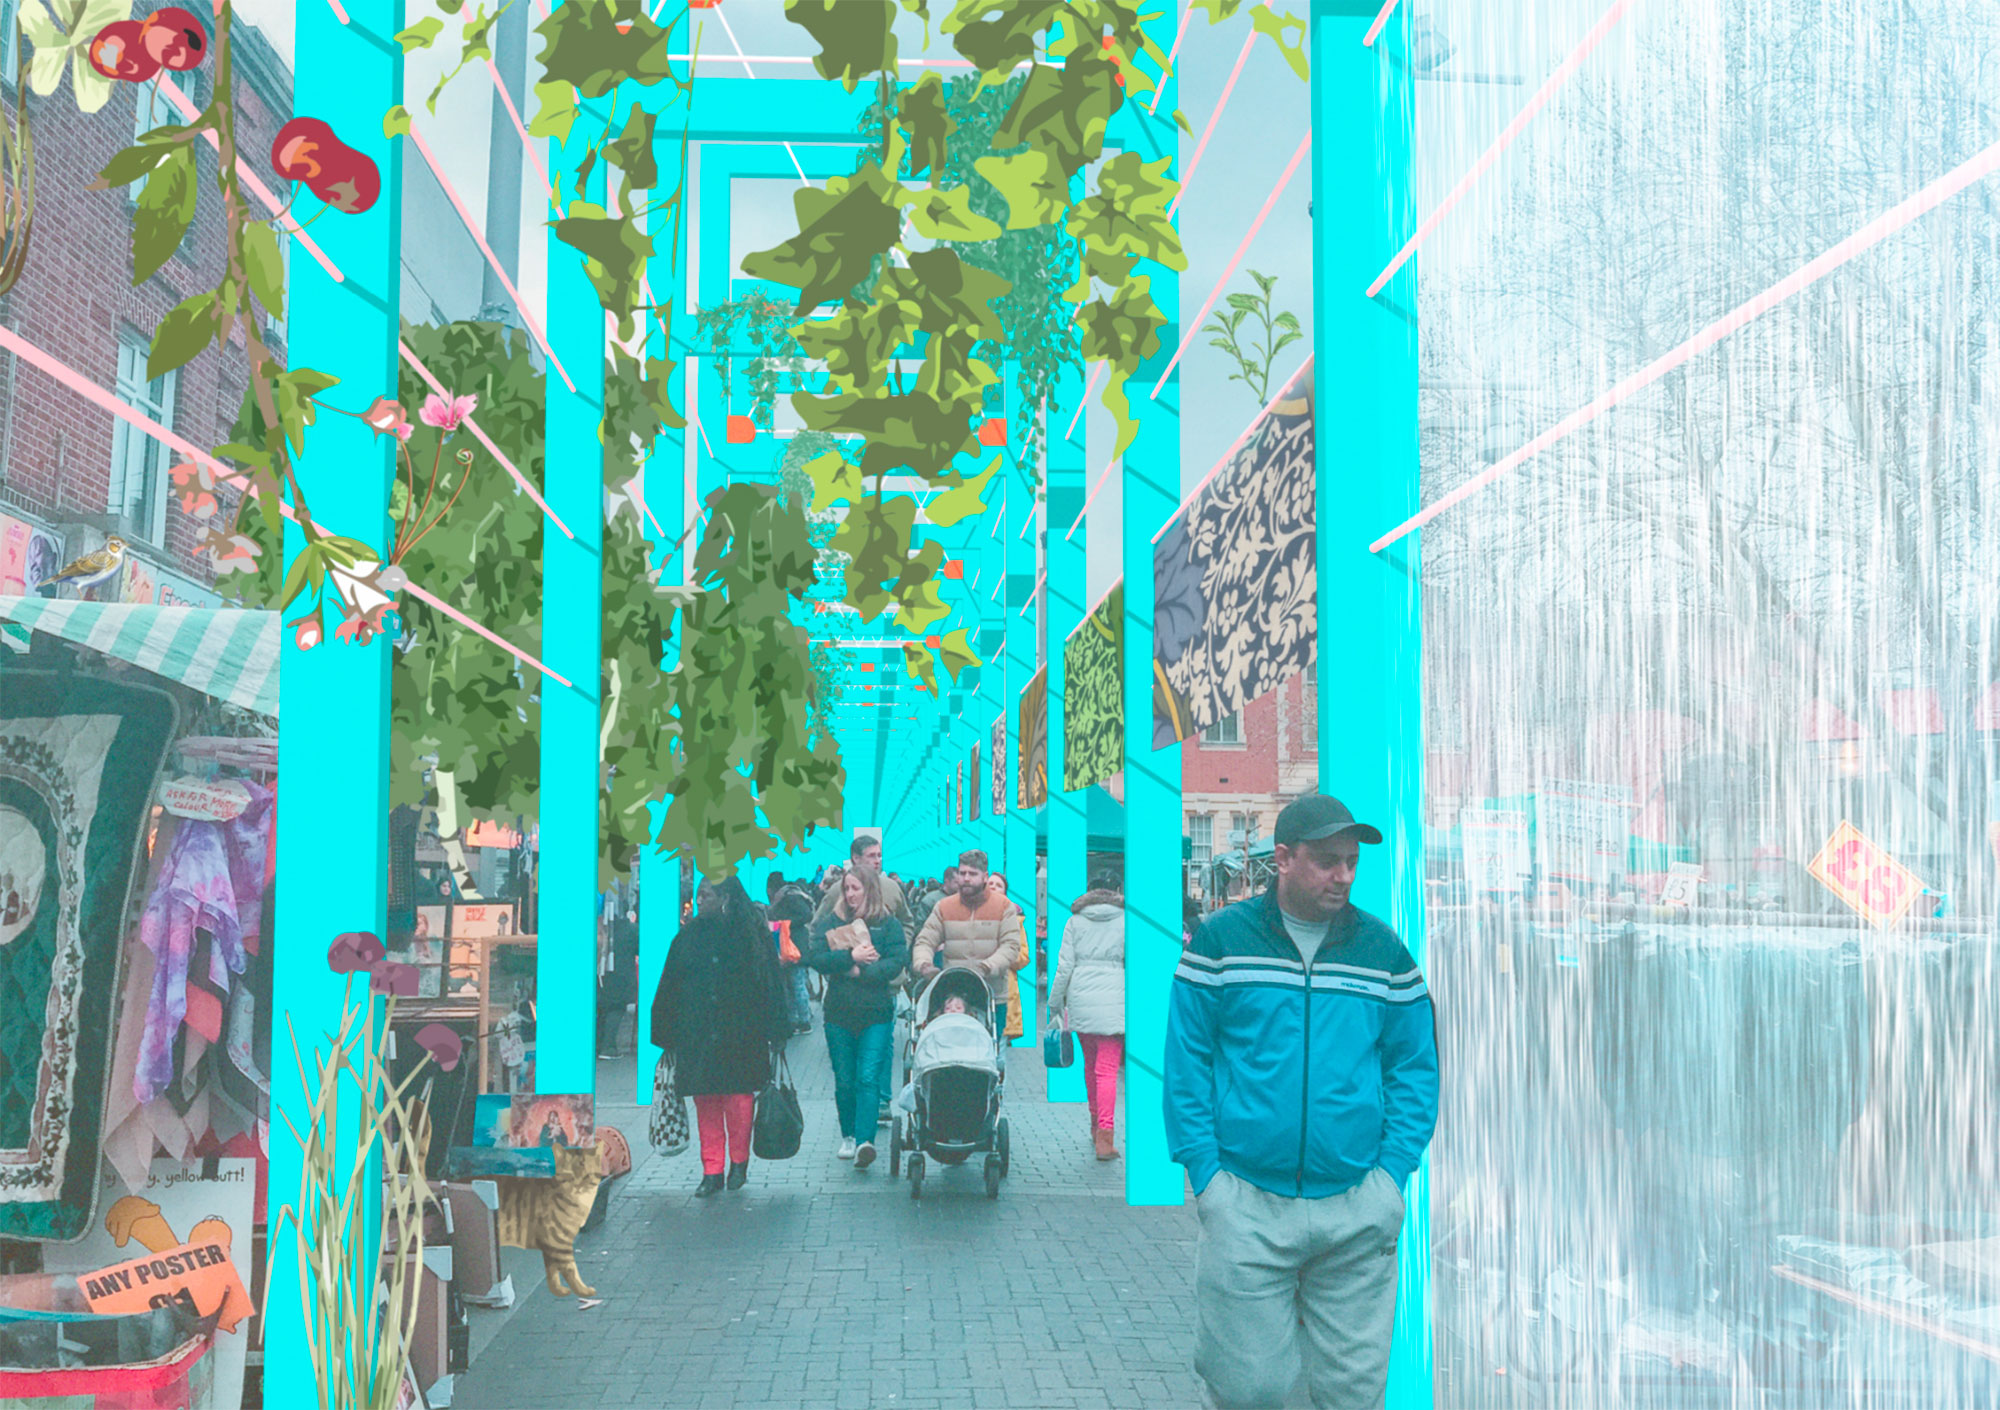 A pergola is one of a series of imagined interventions that create a new journey through the borough.